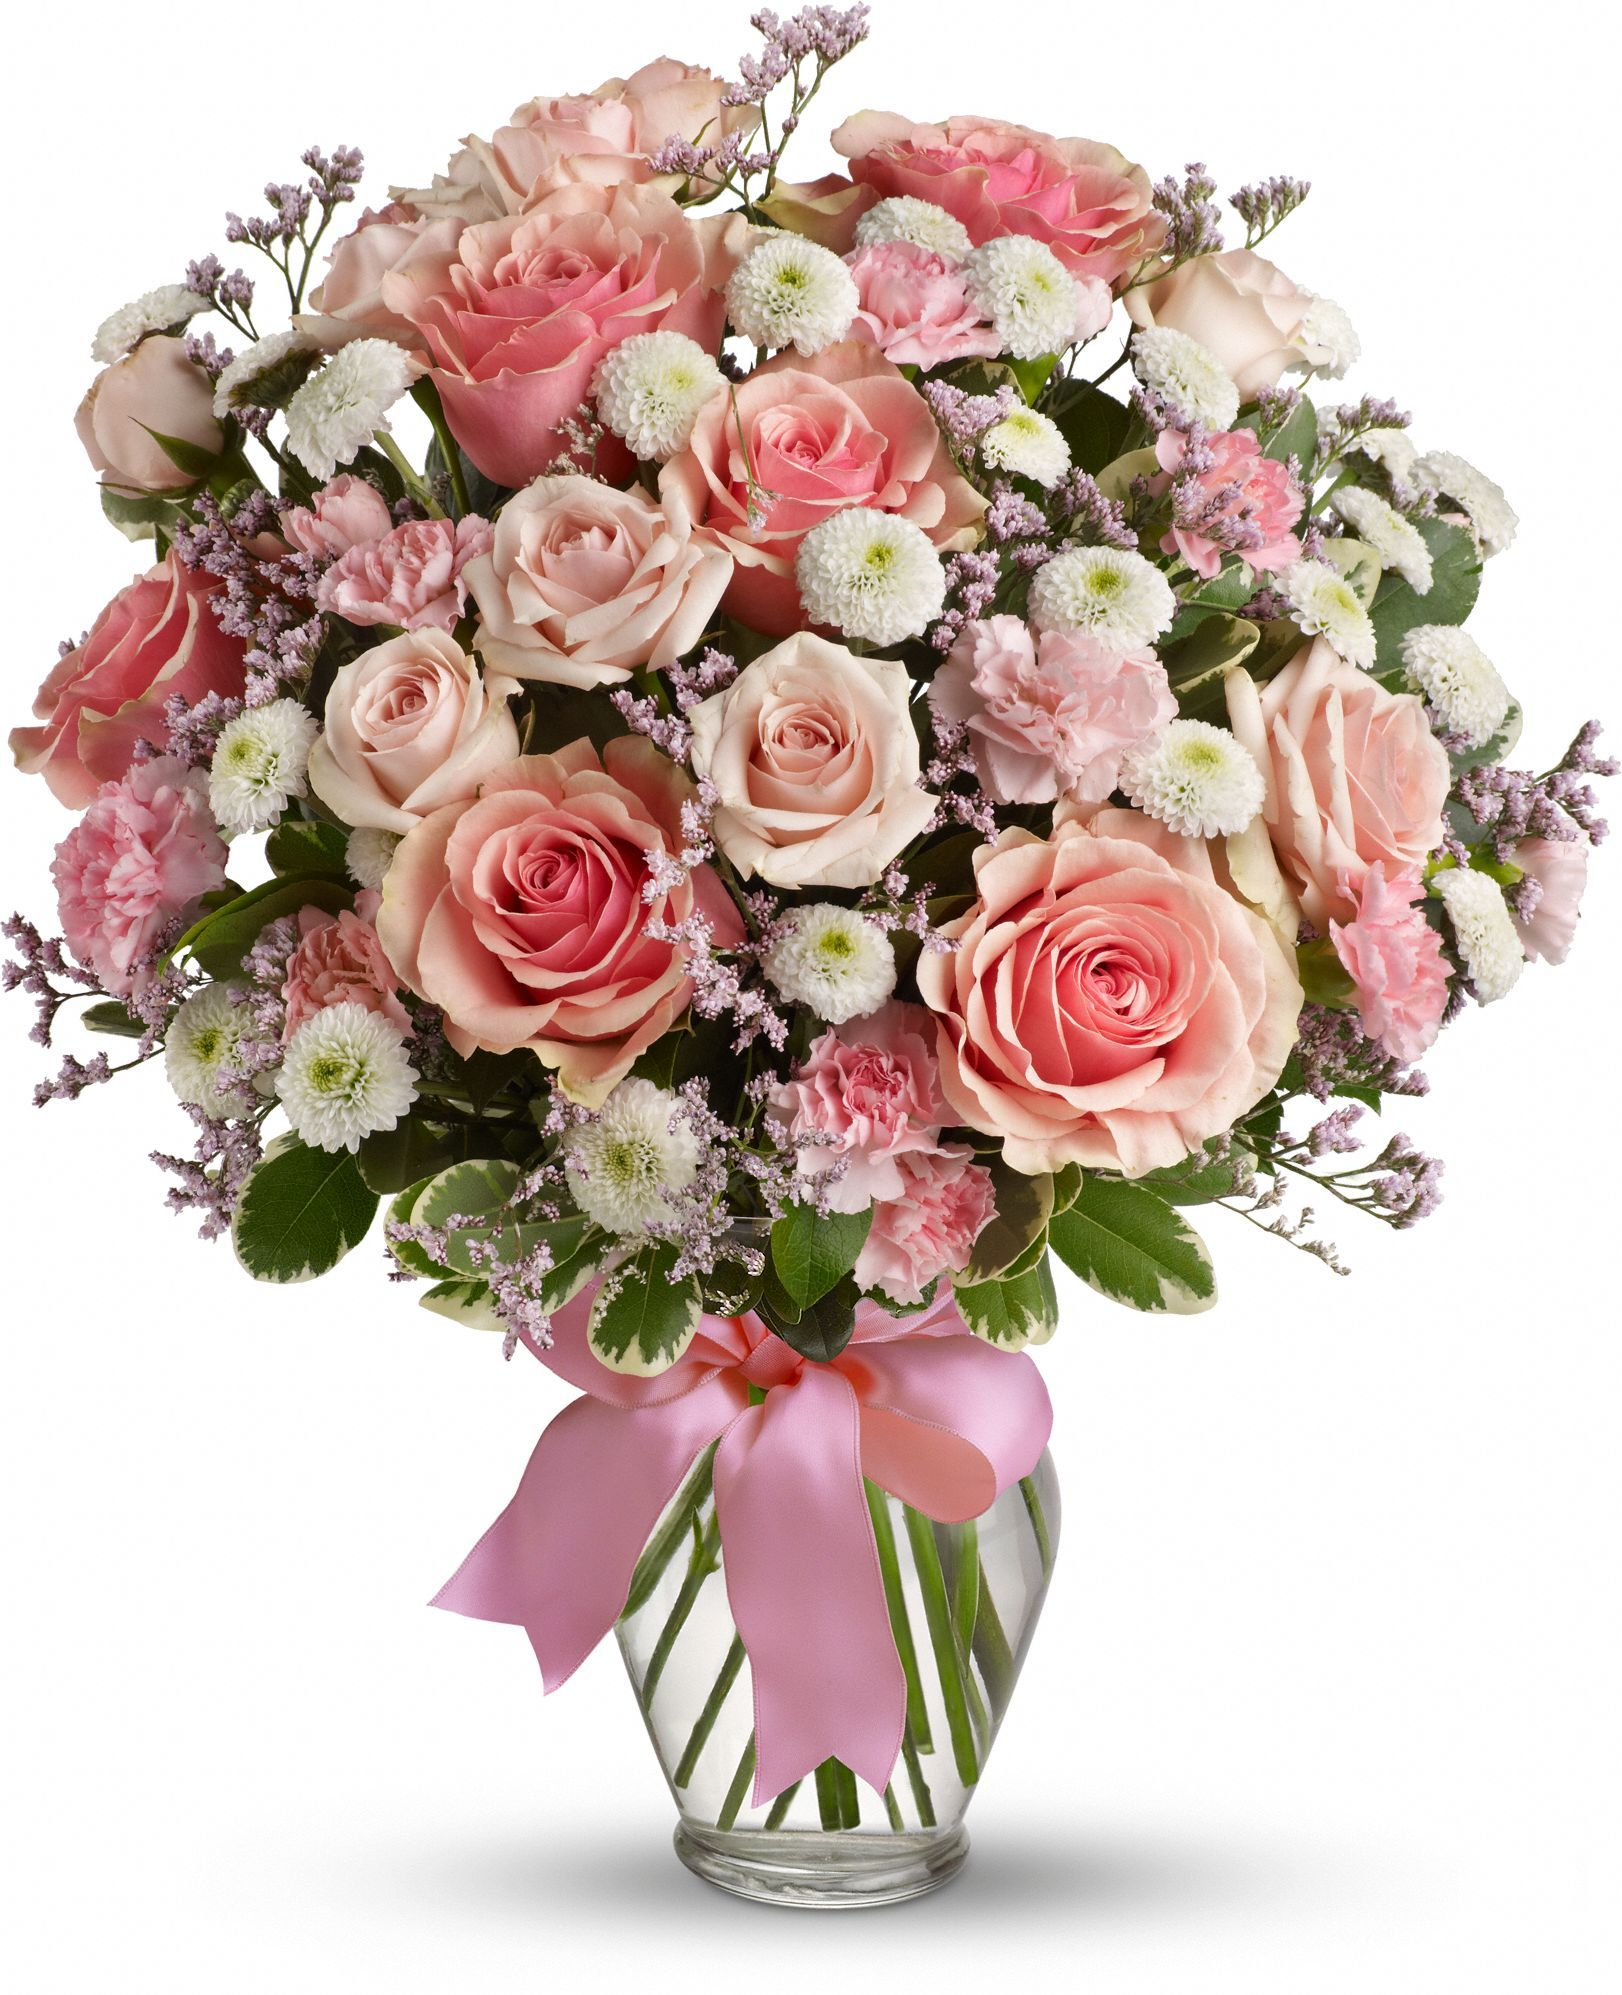 Cotton Candy With Roses Save 25 On This Bouquet And Many Others With Coupon Code Tfmdayok1b2 Offer Expires 05 14 Flowers Flower Arrangements Beautiful Flowers